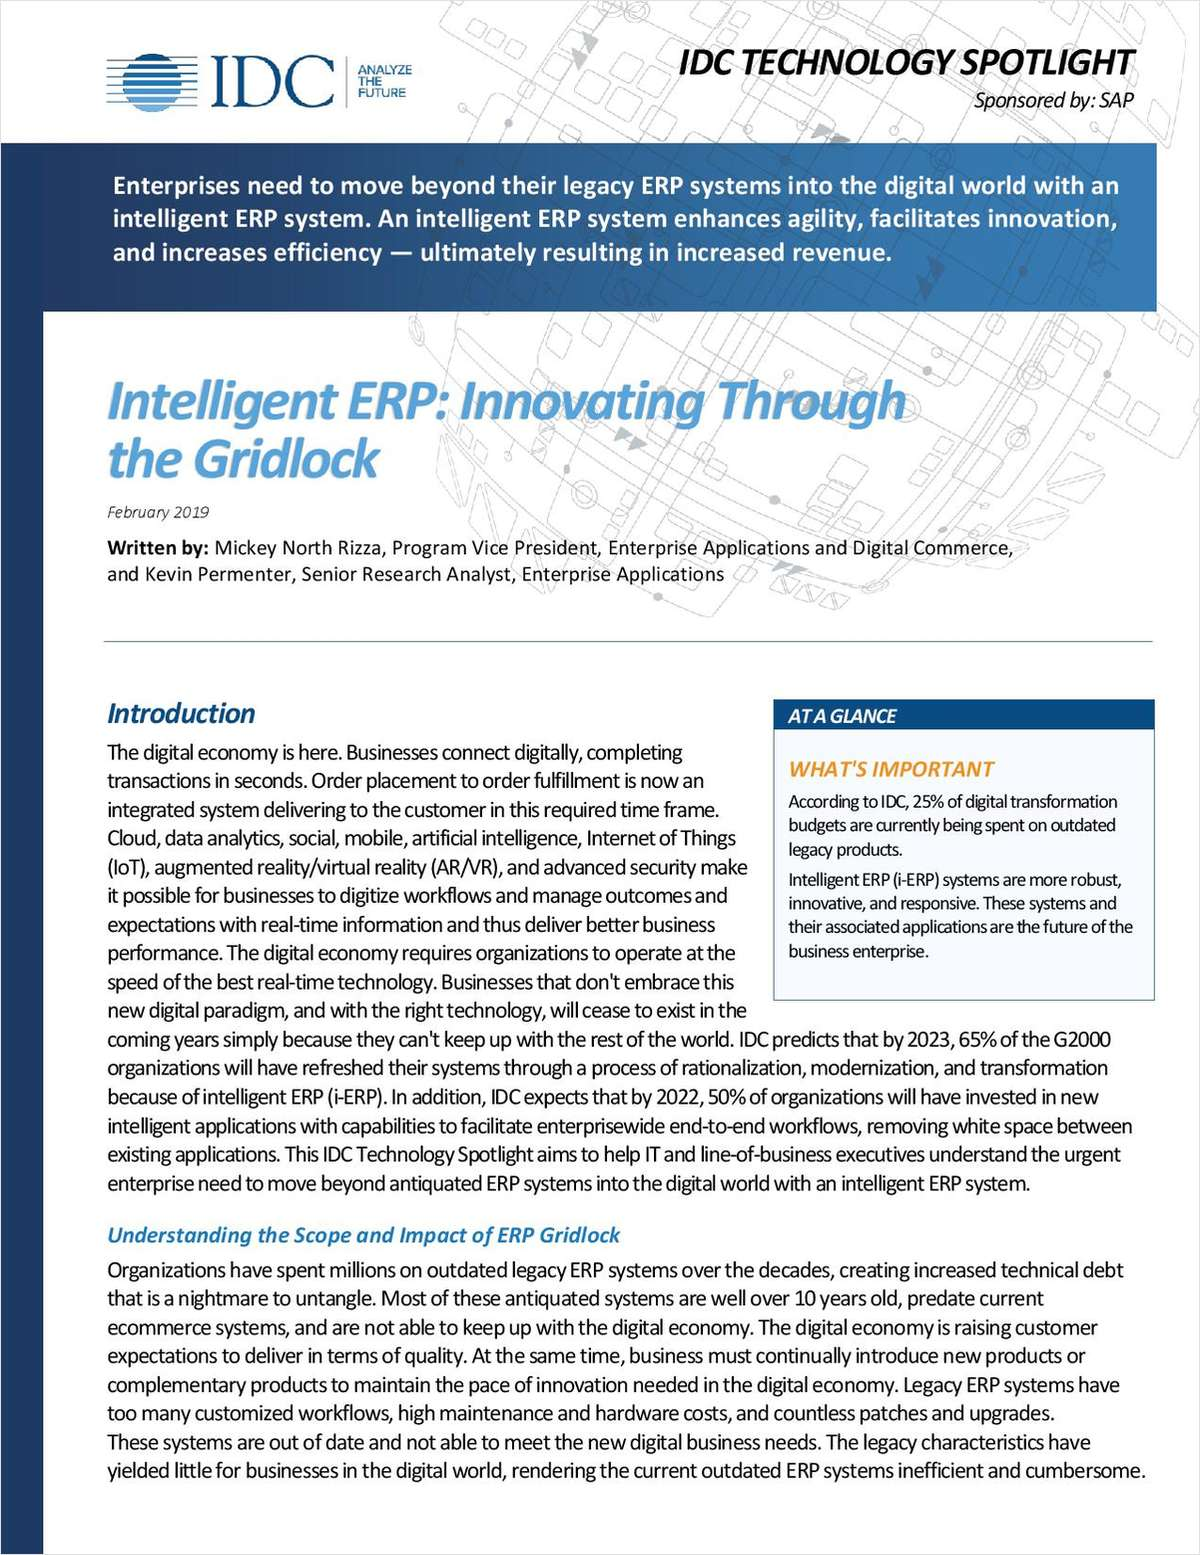 Intelligent ERP: Innovating Through the Gridlock (IDC)